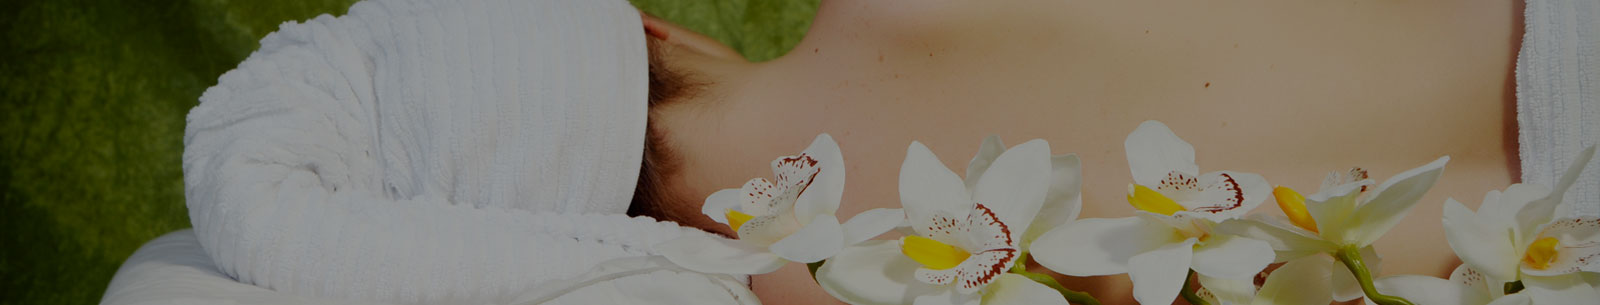 Beauty Treatments Derry Header